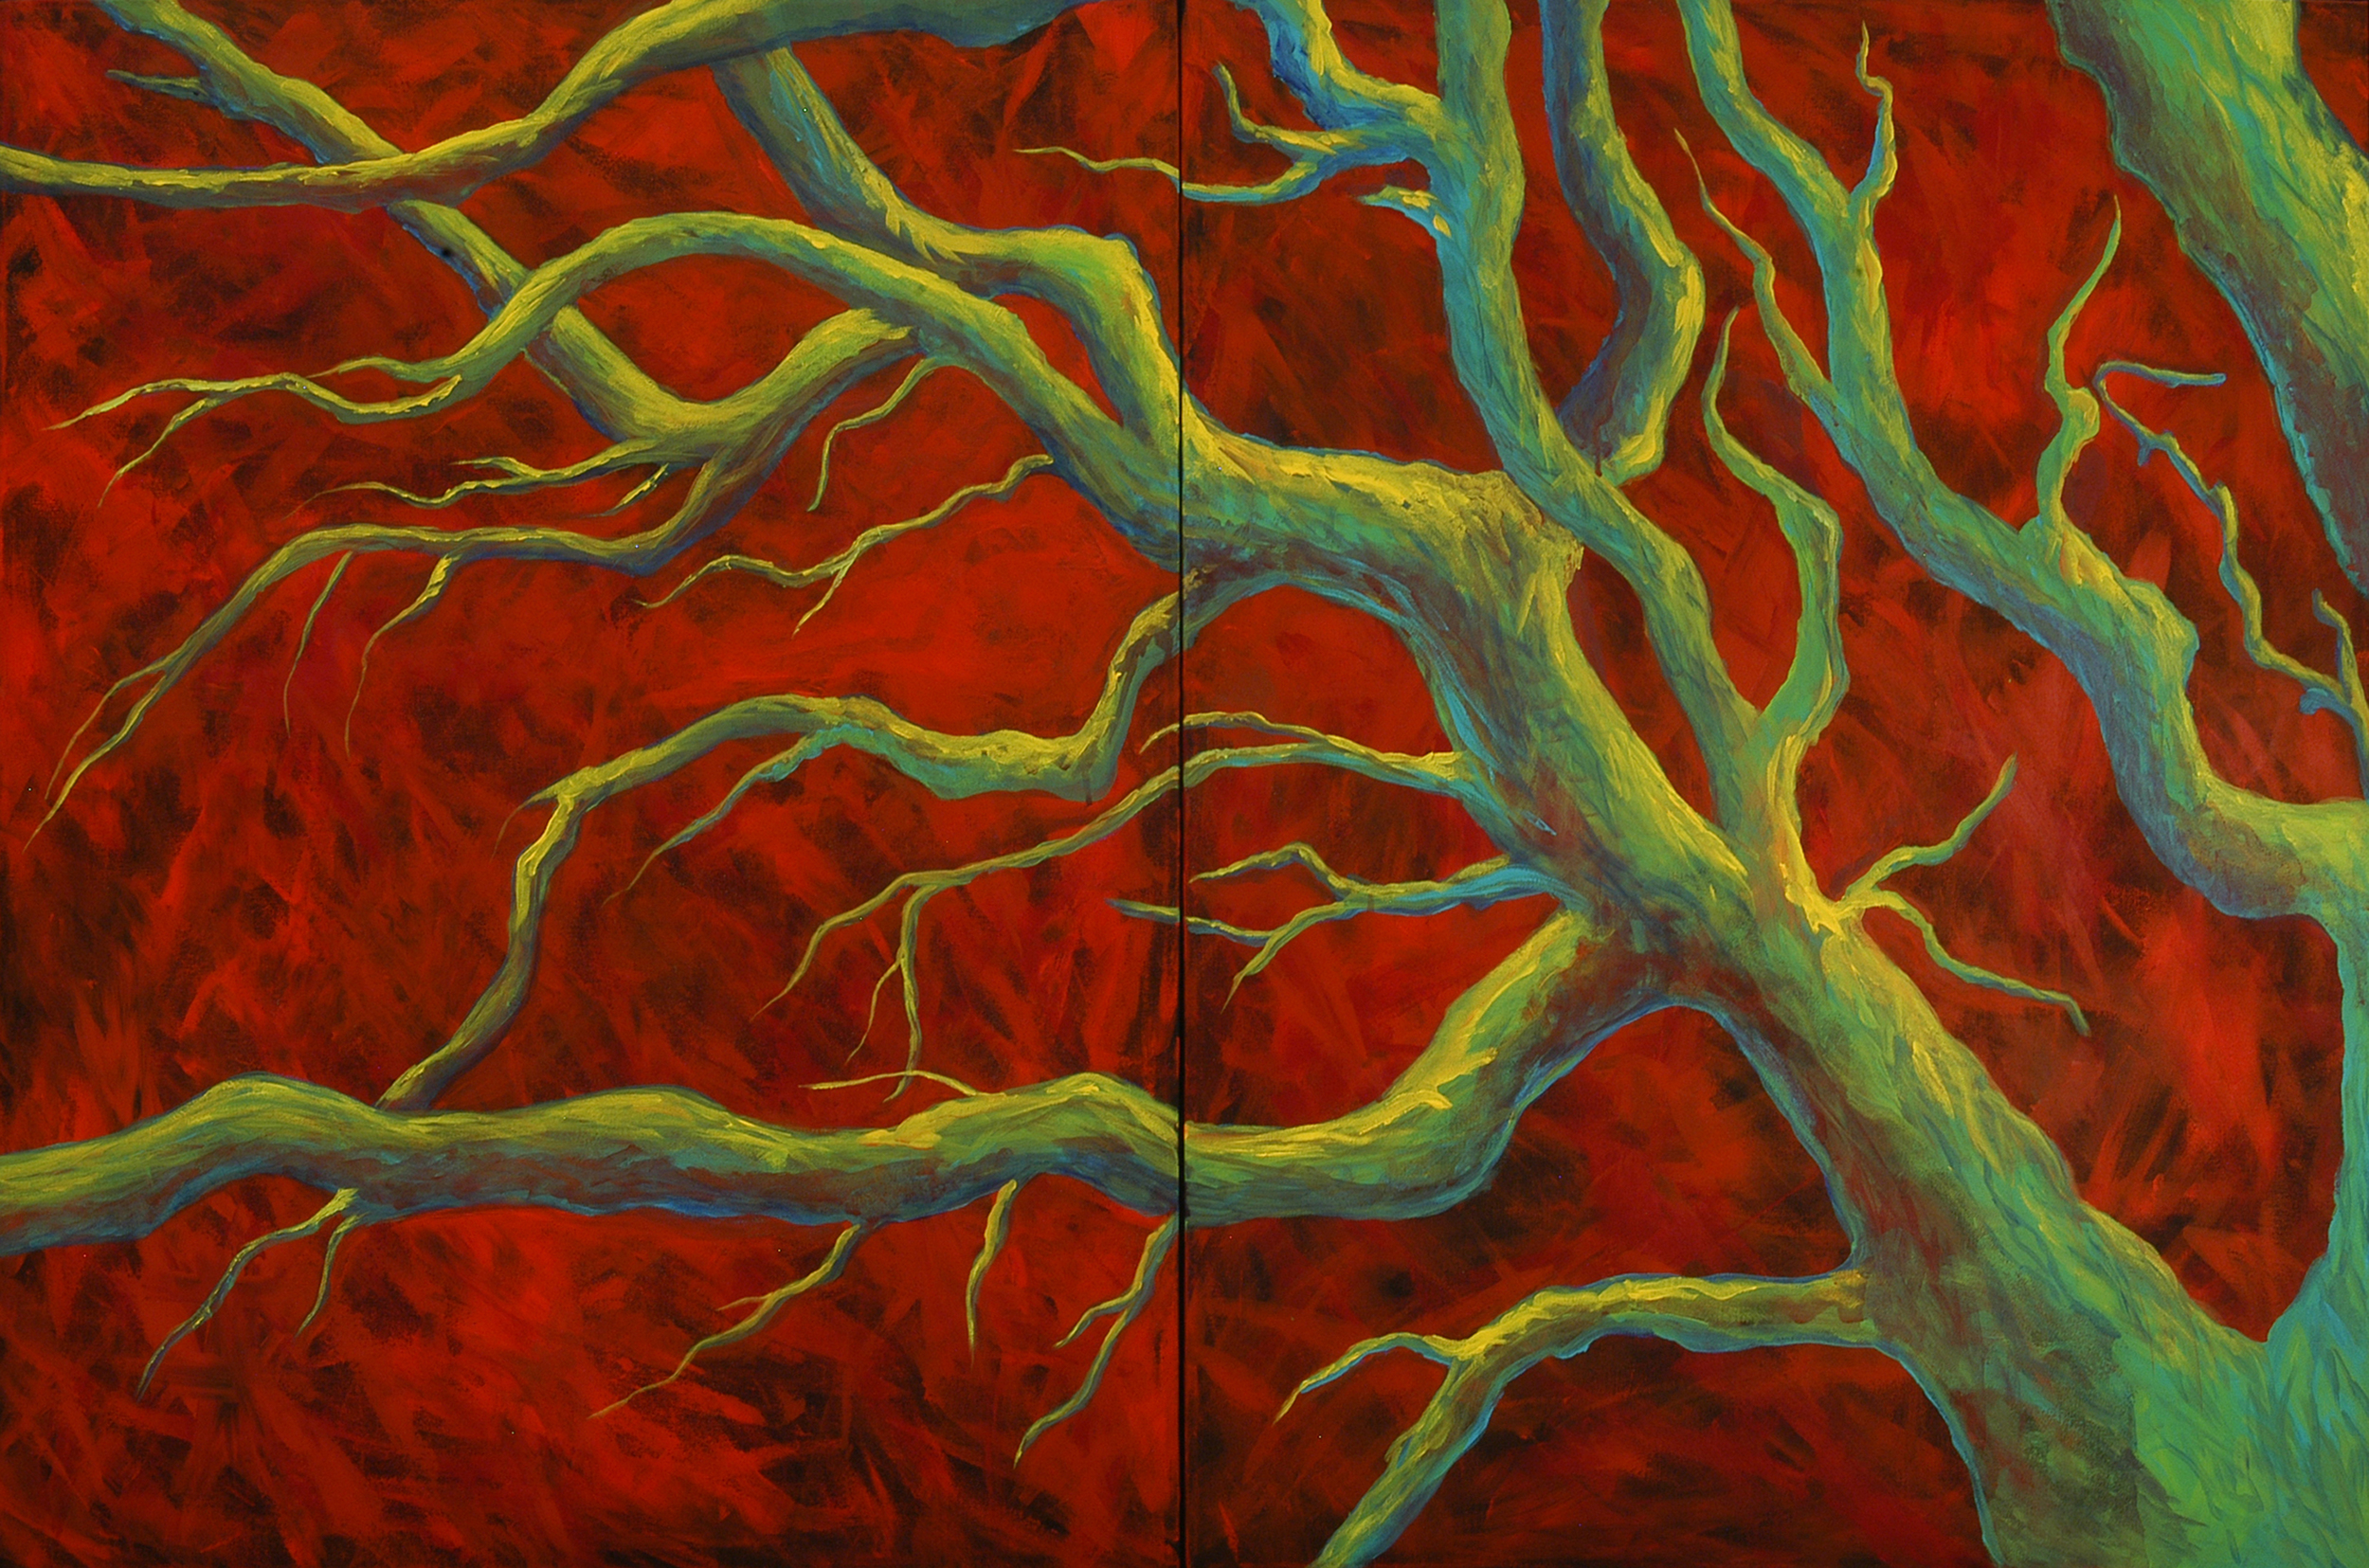 """Pilgrimage"" Diptych, MaryLea Harris, Acrylic on Canvas, 40"" x 60"""